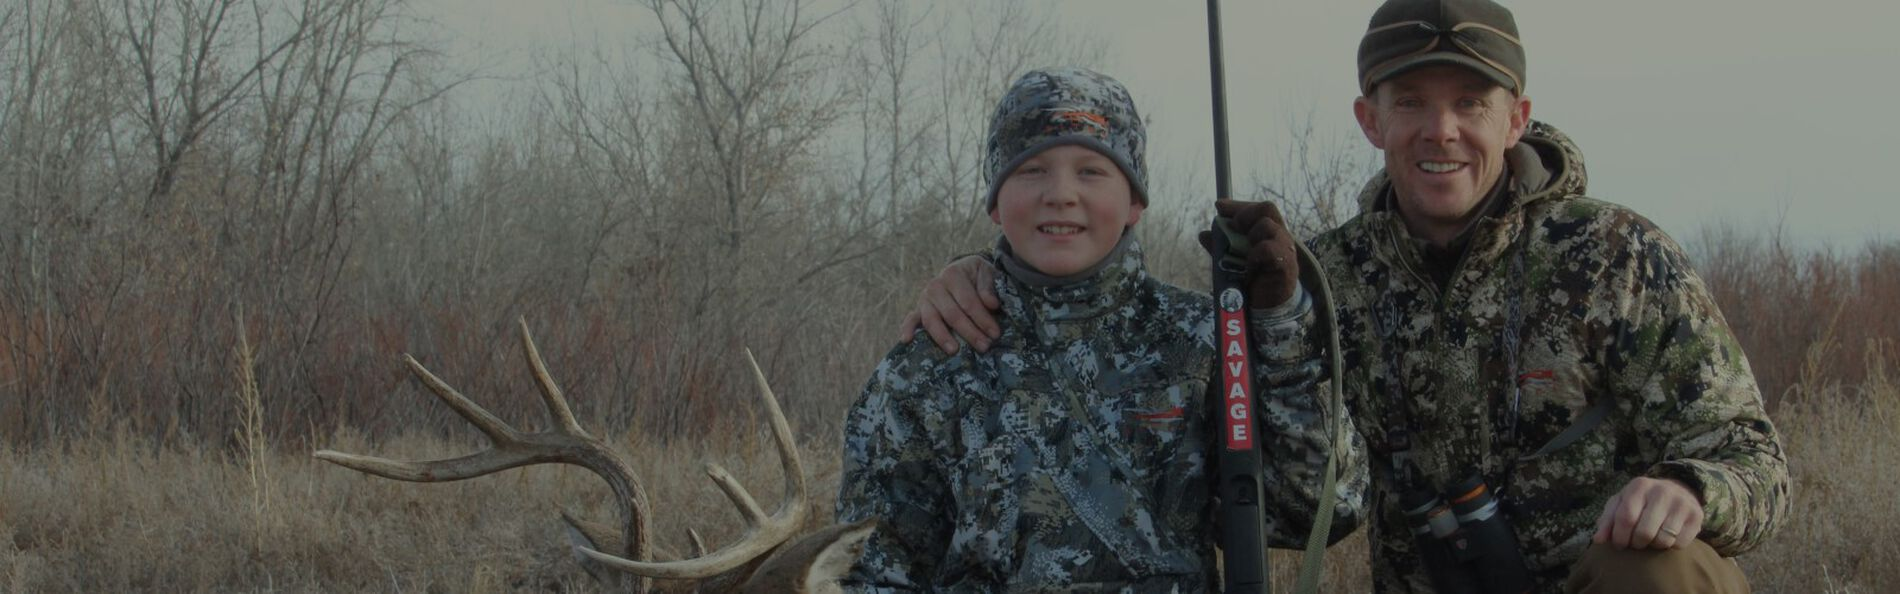 Young hunter kneeling beside a dead deer with an adult hunter